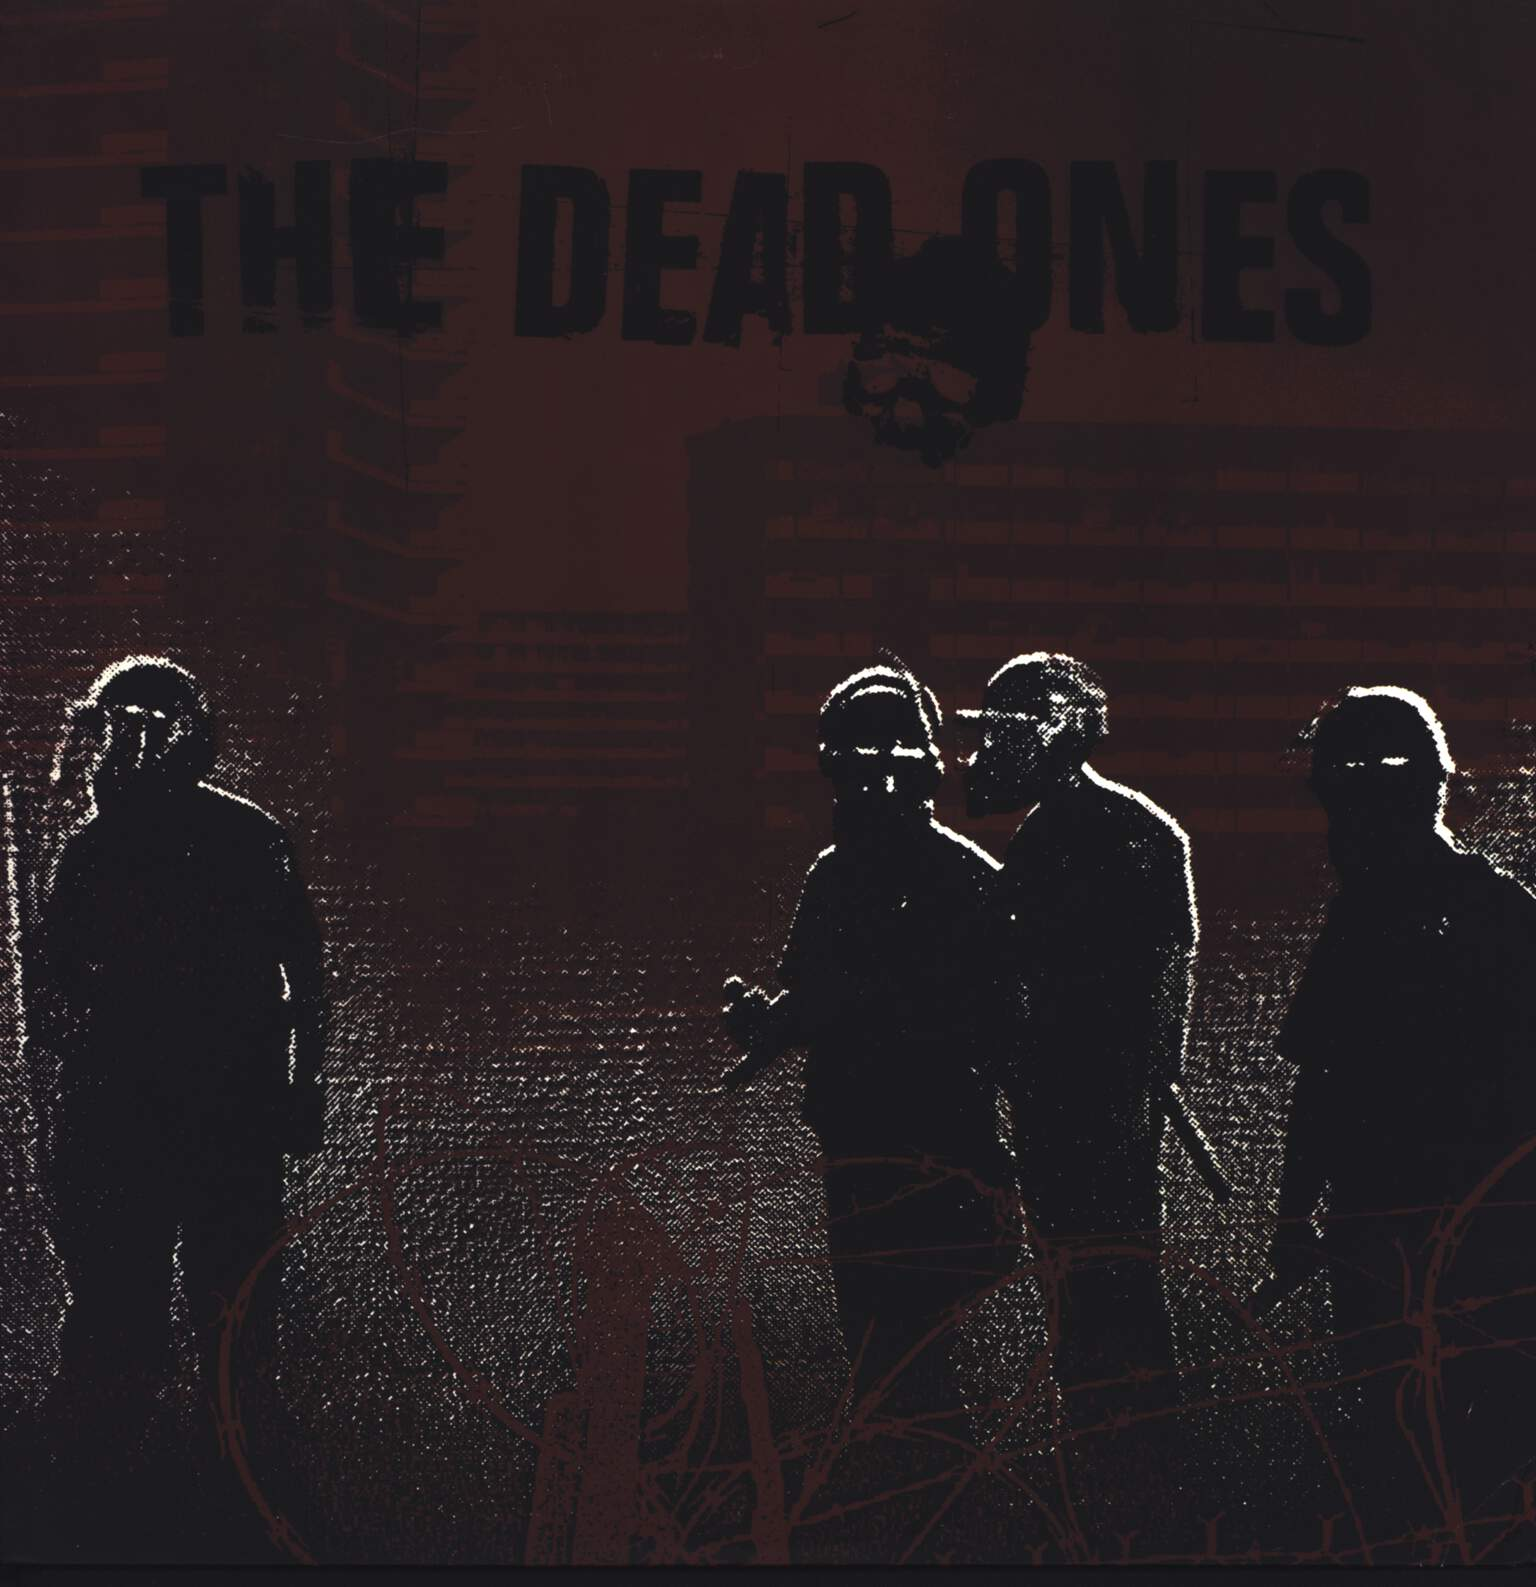 The Dead Ones: The Dead Ones, LP (Vinyl)